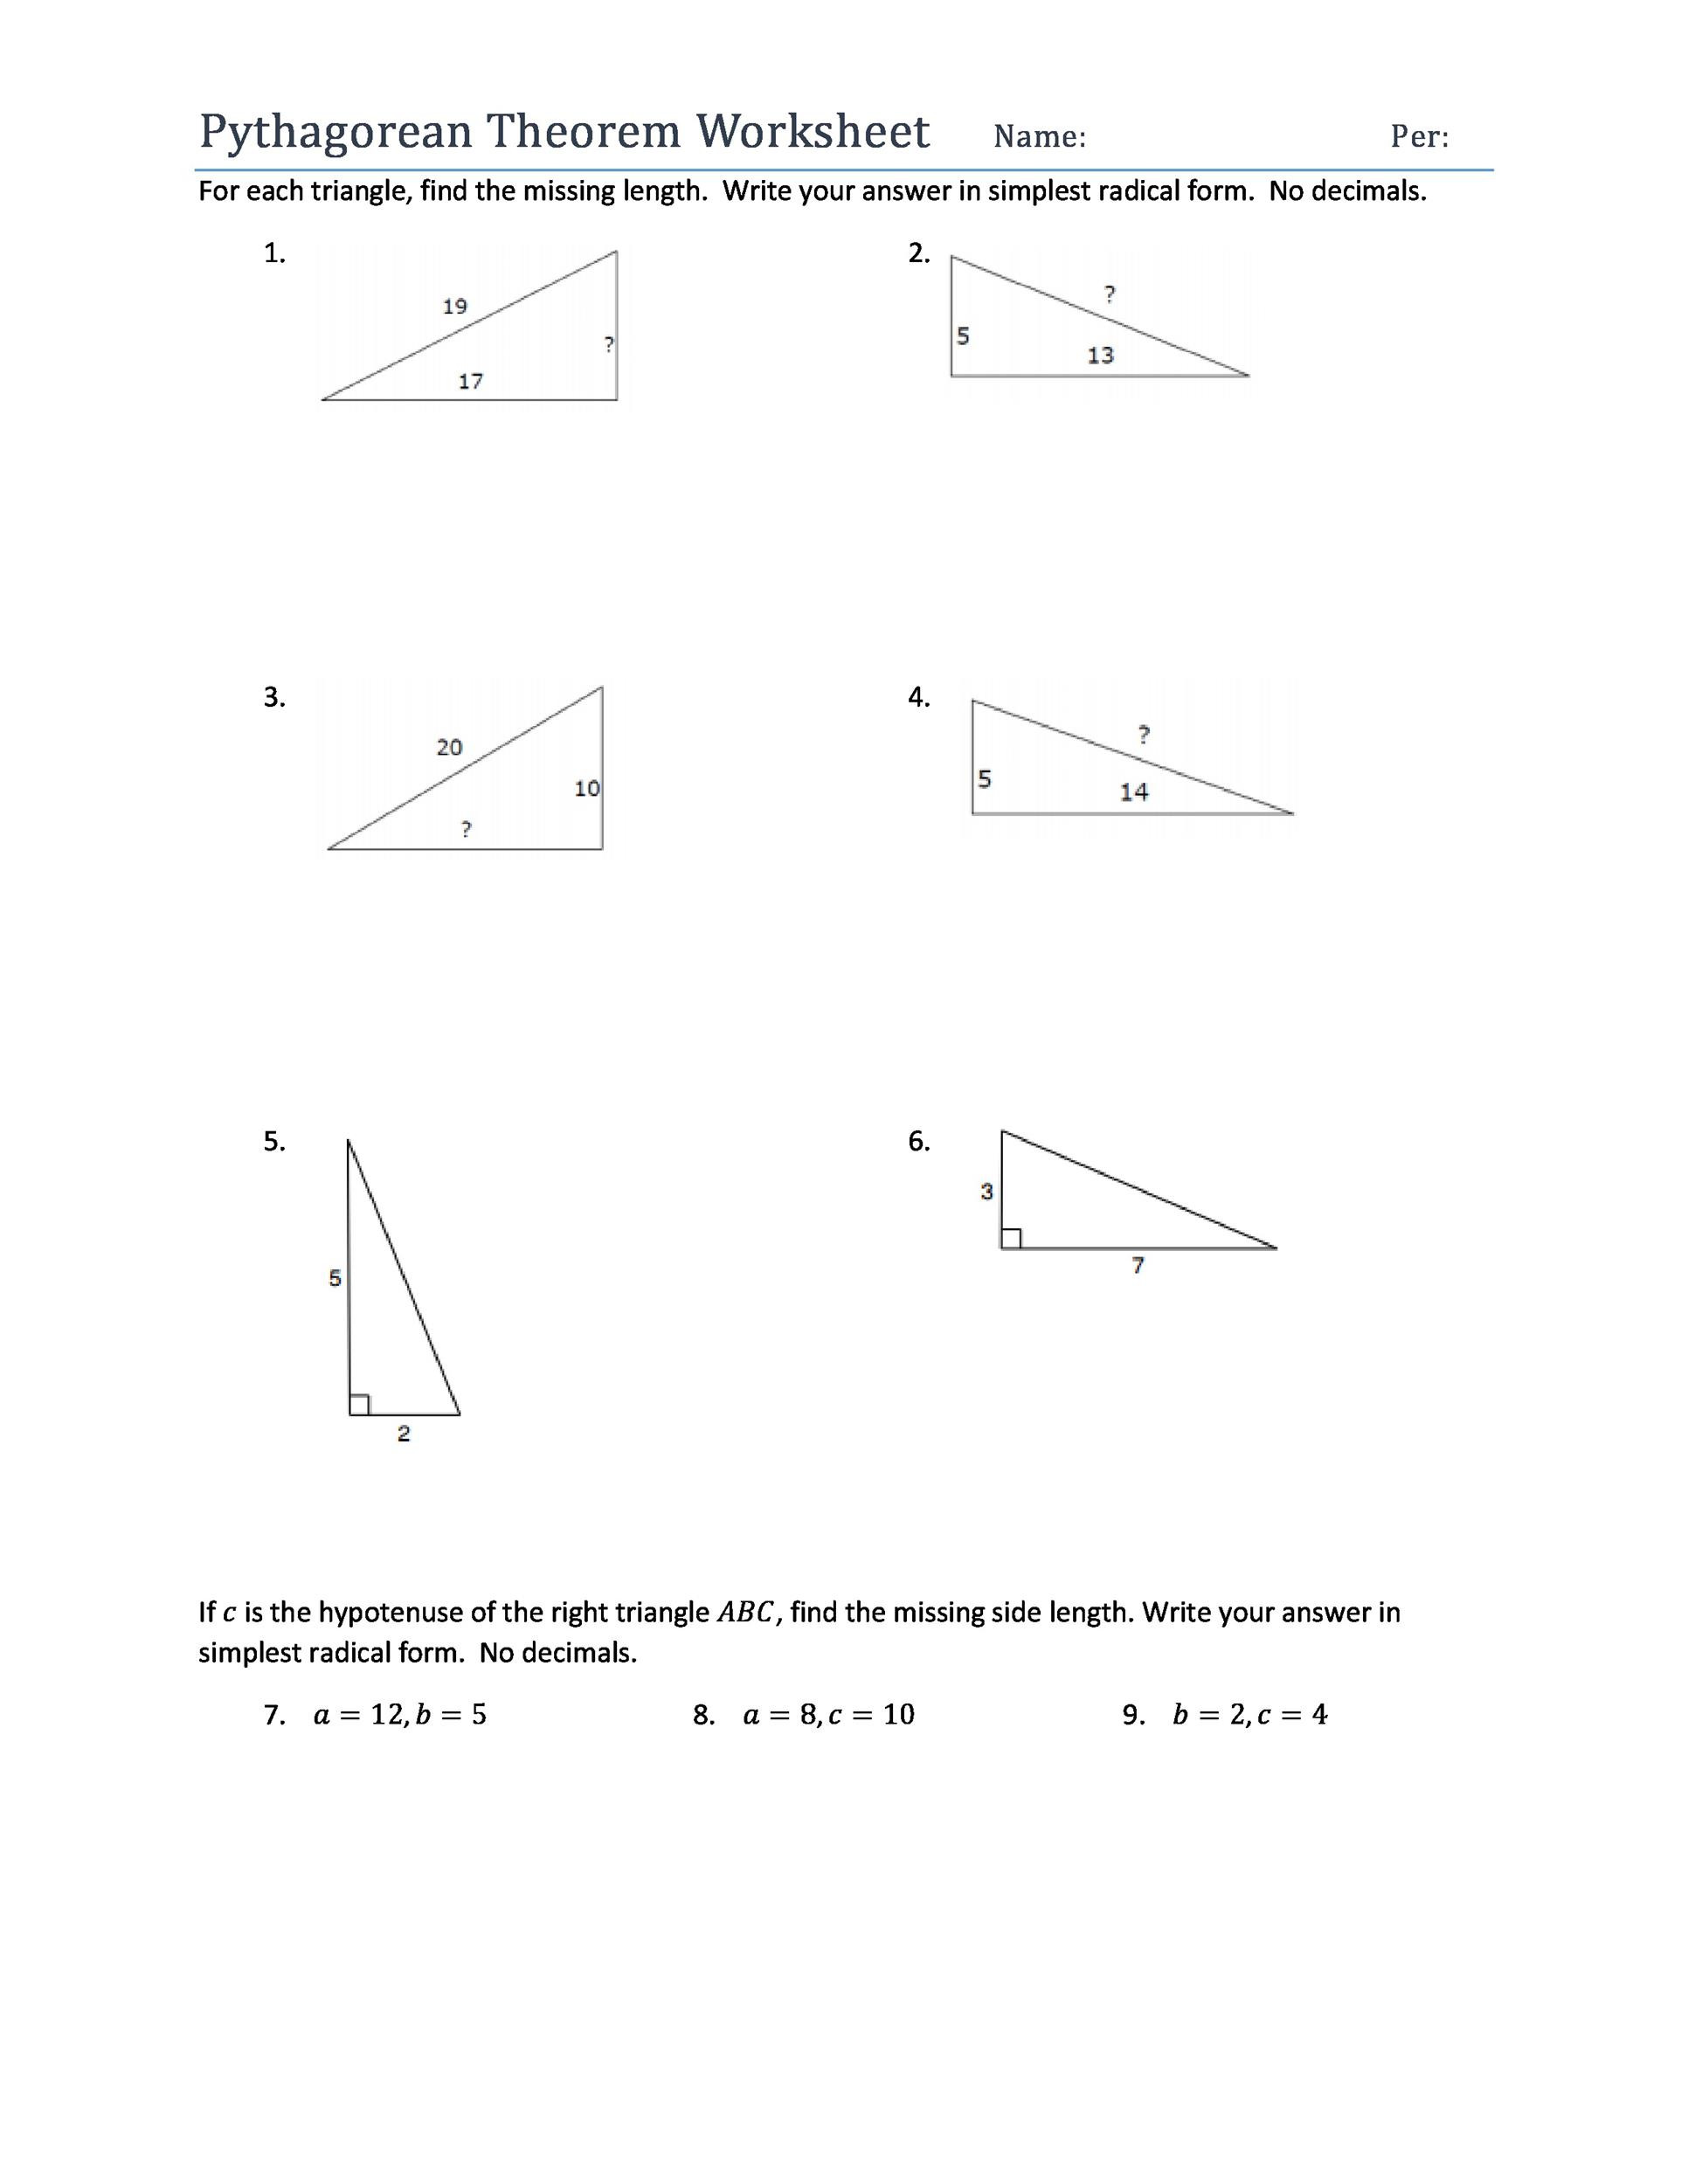 30 Pythagorean Theorem Worksheet Answers